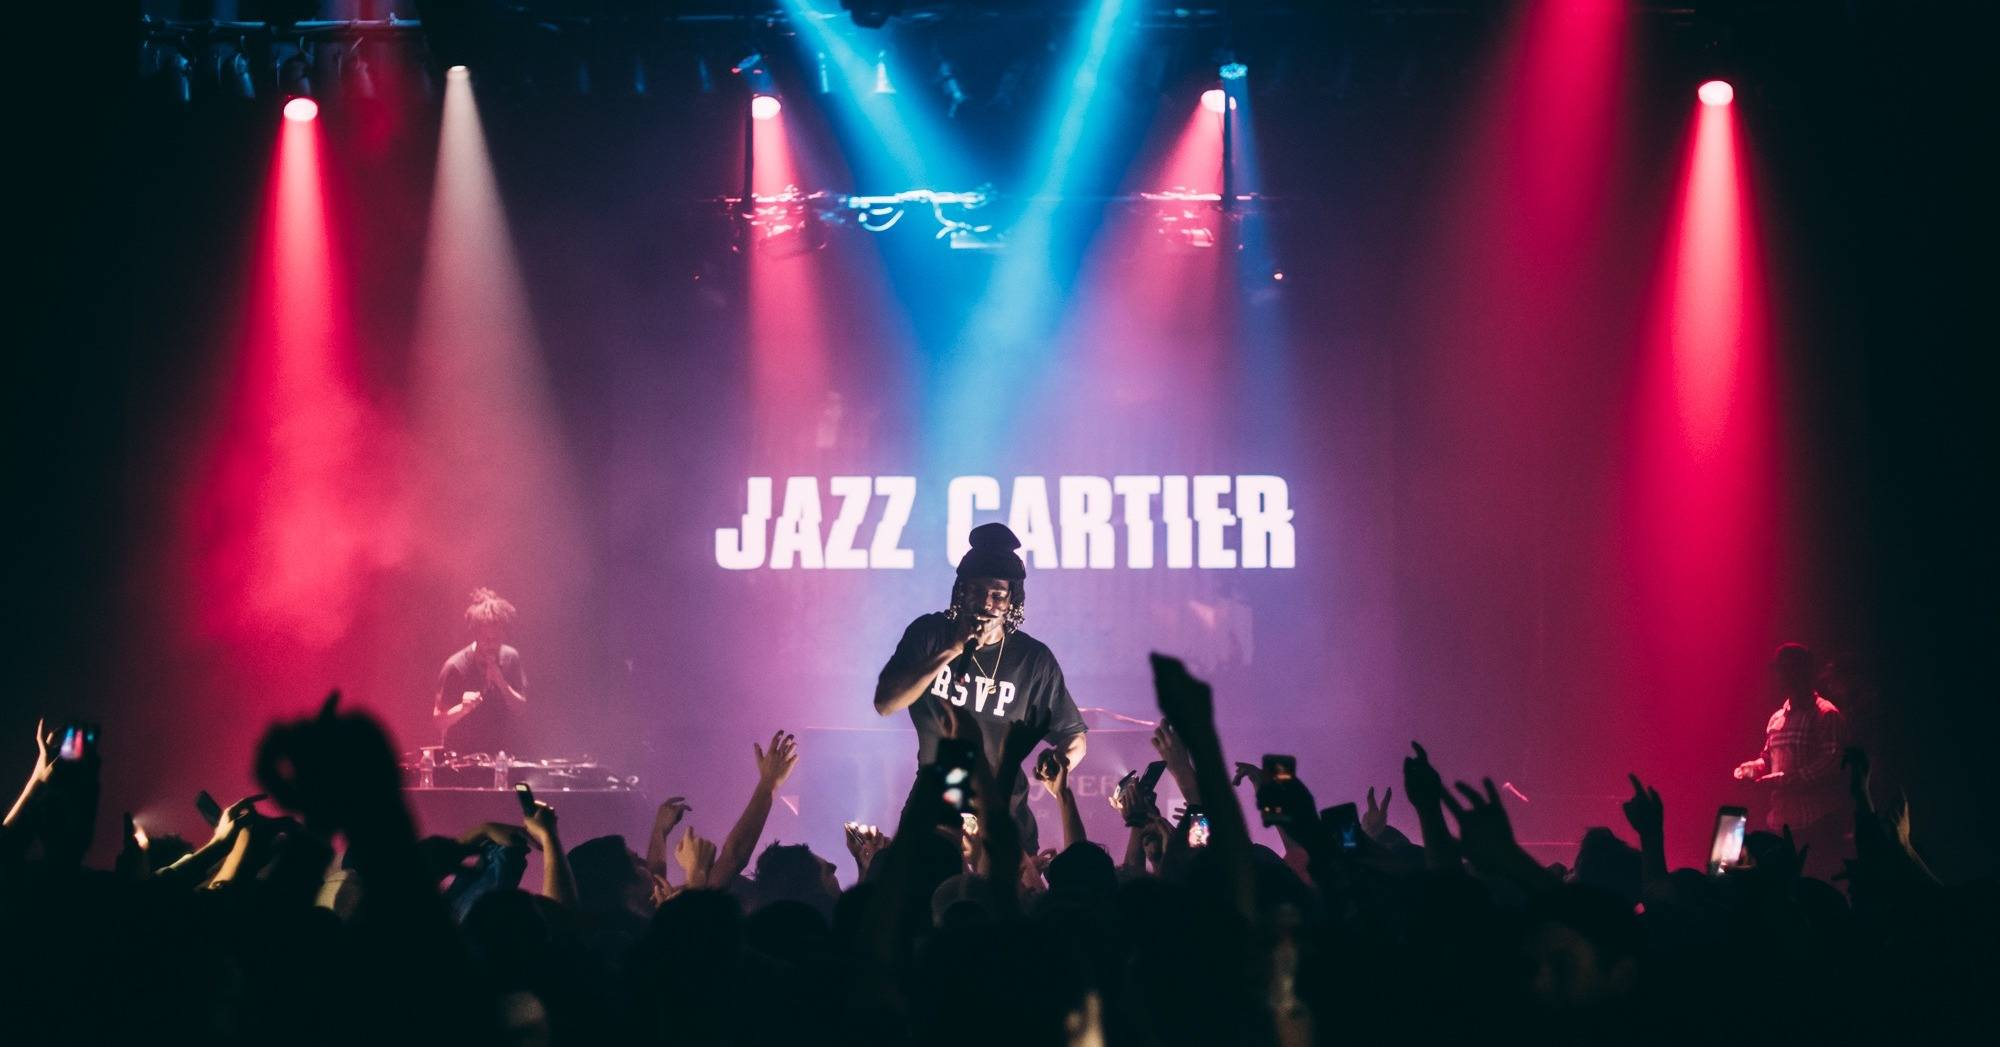 Jazz Cartier Vancouver 2017 concert at Imperial